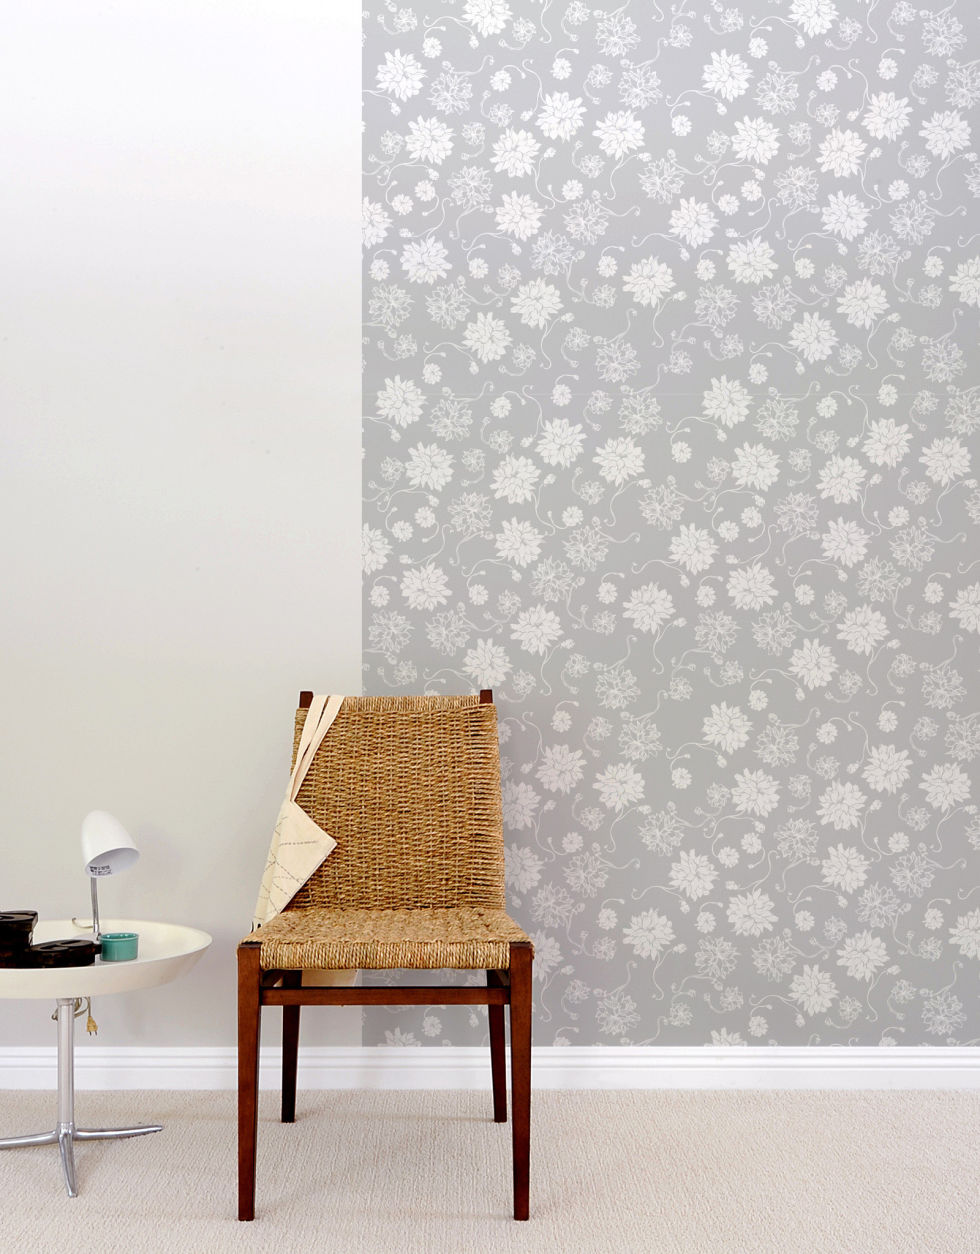 Temporary Wall Paper 20 best removable wallpapers - peel and stick temporary wallpaper